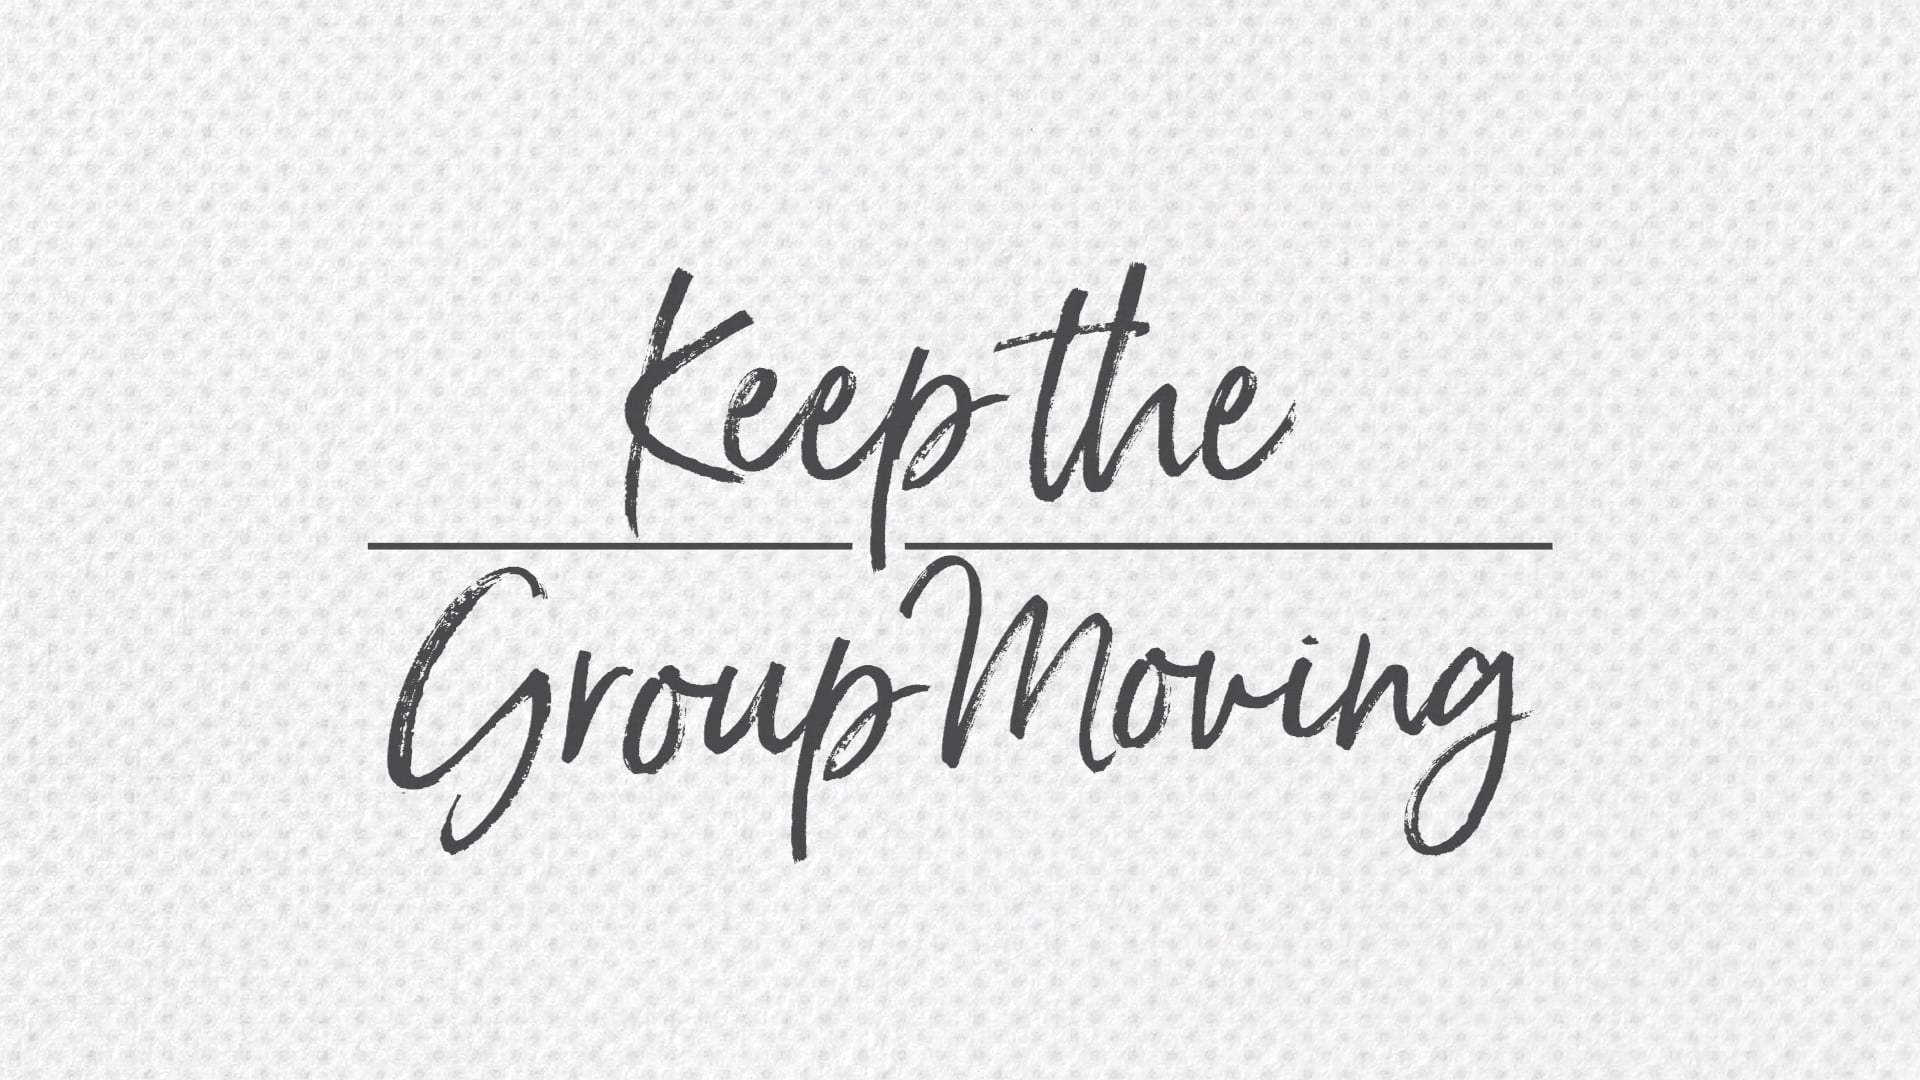 Keep the Group Moving